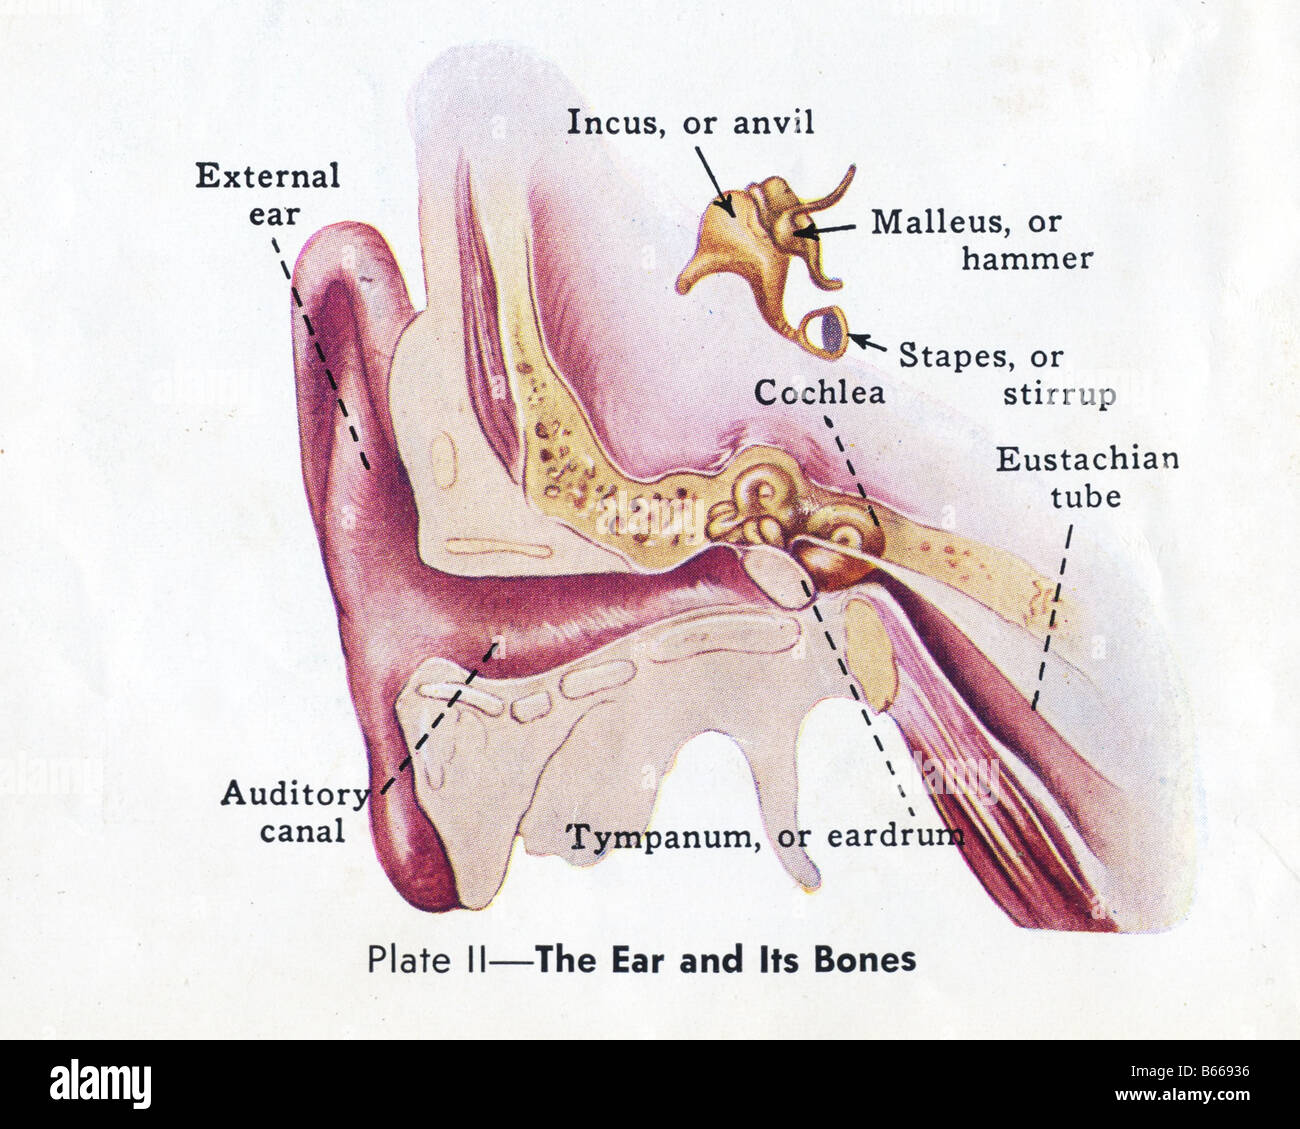 Ear diagram stock photos ear diagram stock images alamy old medical diagram parts of the ear stock image ccuart Images